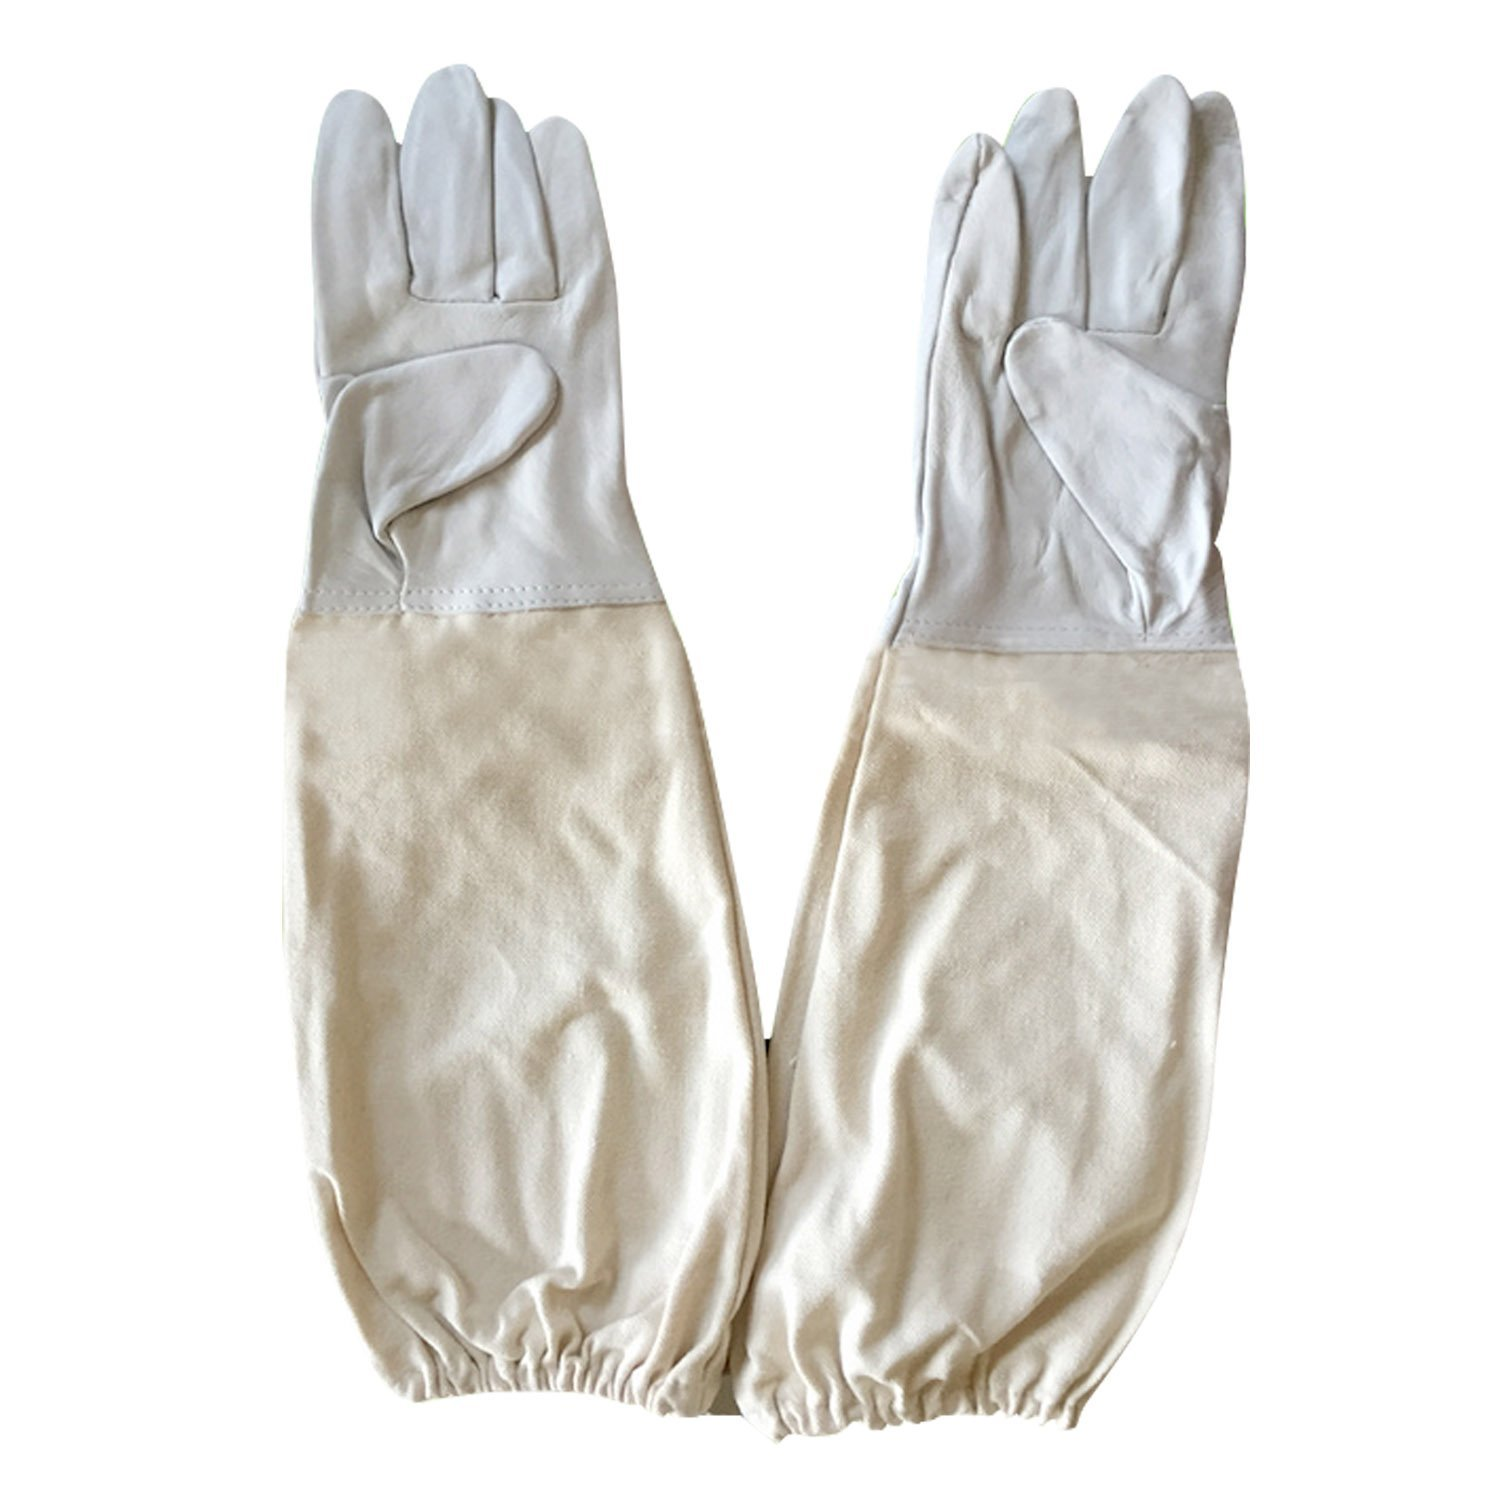 1 Pair XL Alles Goat Leather Beekeeping Gloves with Vented Sleeves